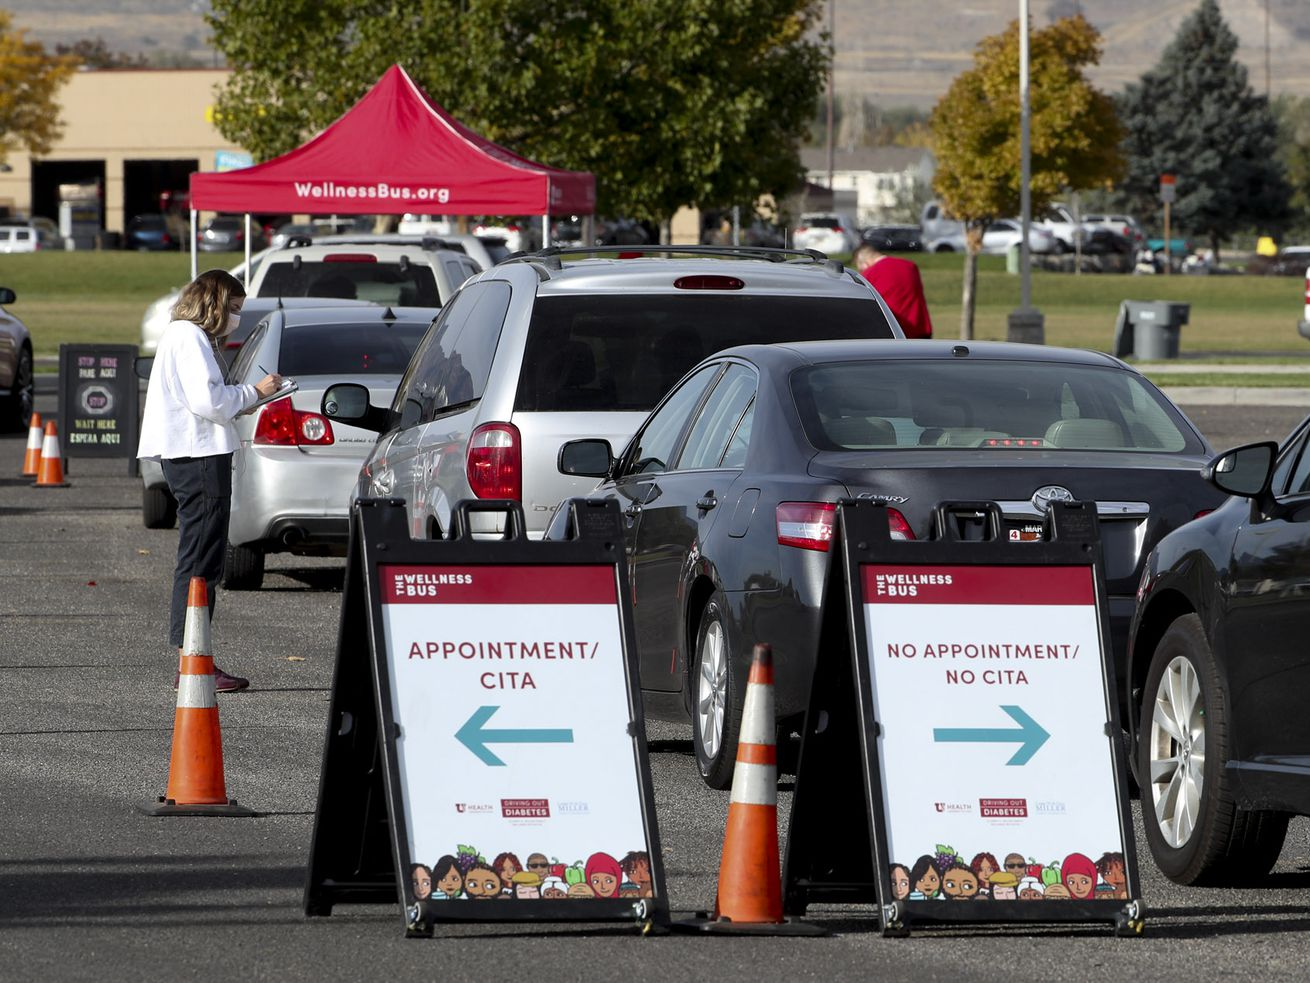 Vehicles form a line for COVID-19 testing as the University Health Wellness Bus visits Centennial Park in West Valley City on Monday, Oct. 19, 2020.